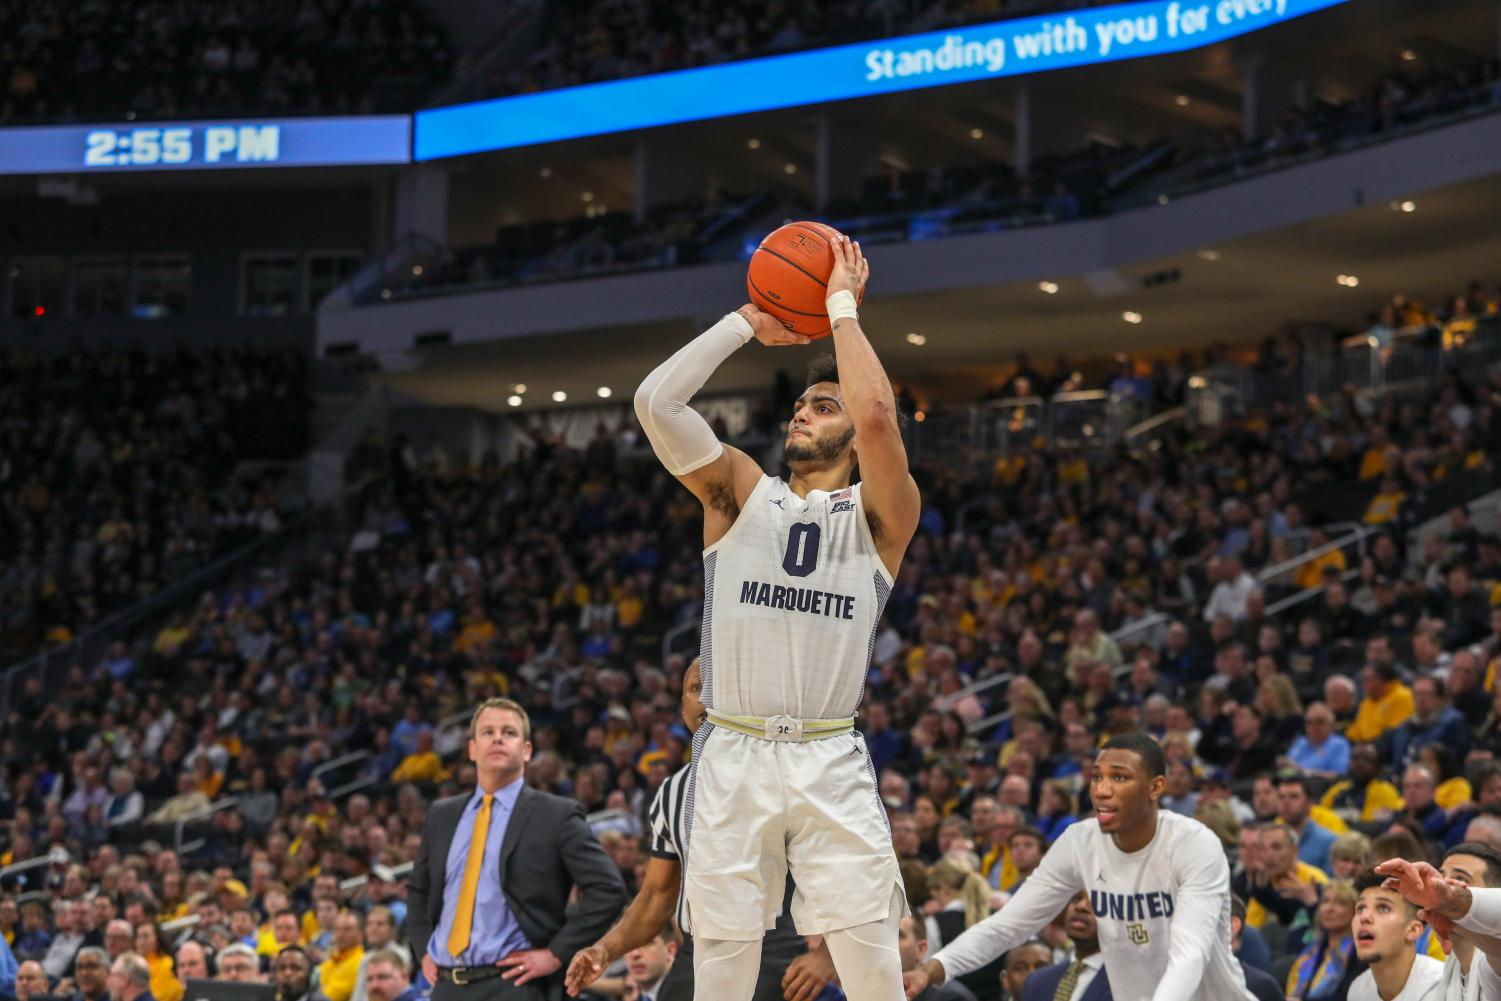 Markus Howard (0) dropped a game-high 42 points at Georgetown Saturday. (Photo courtesy of Marquette Athletics.)